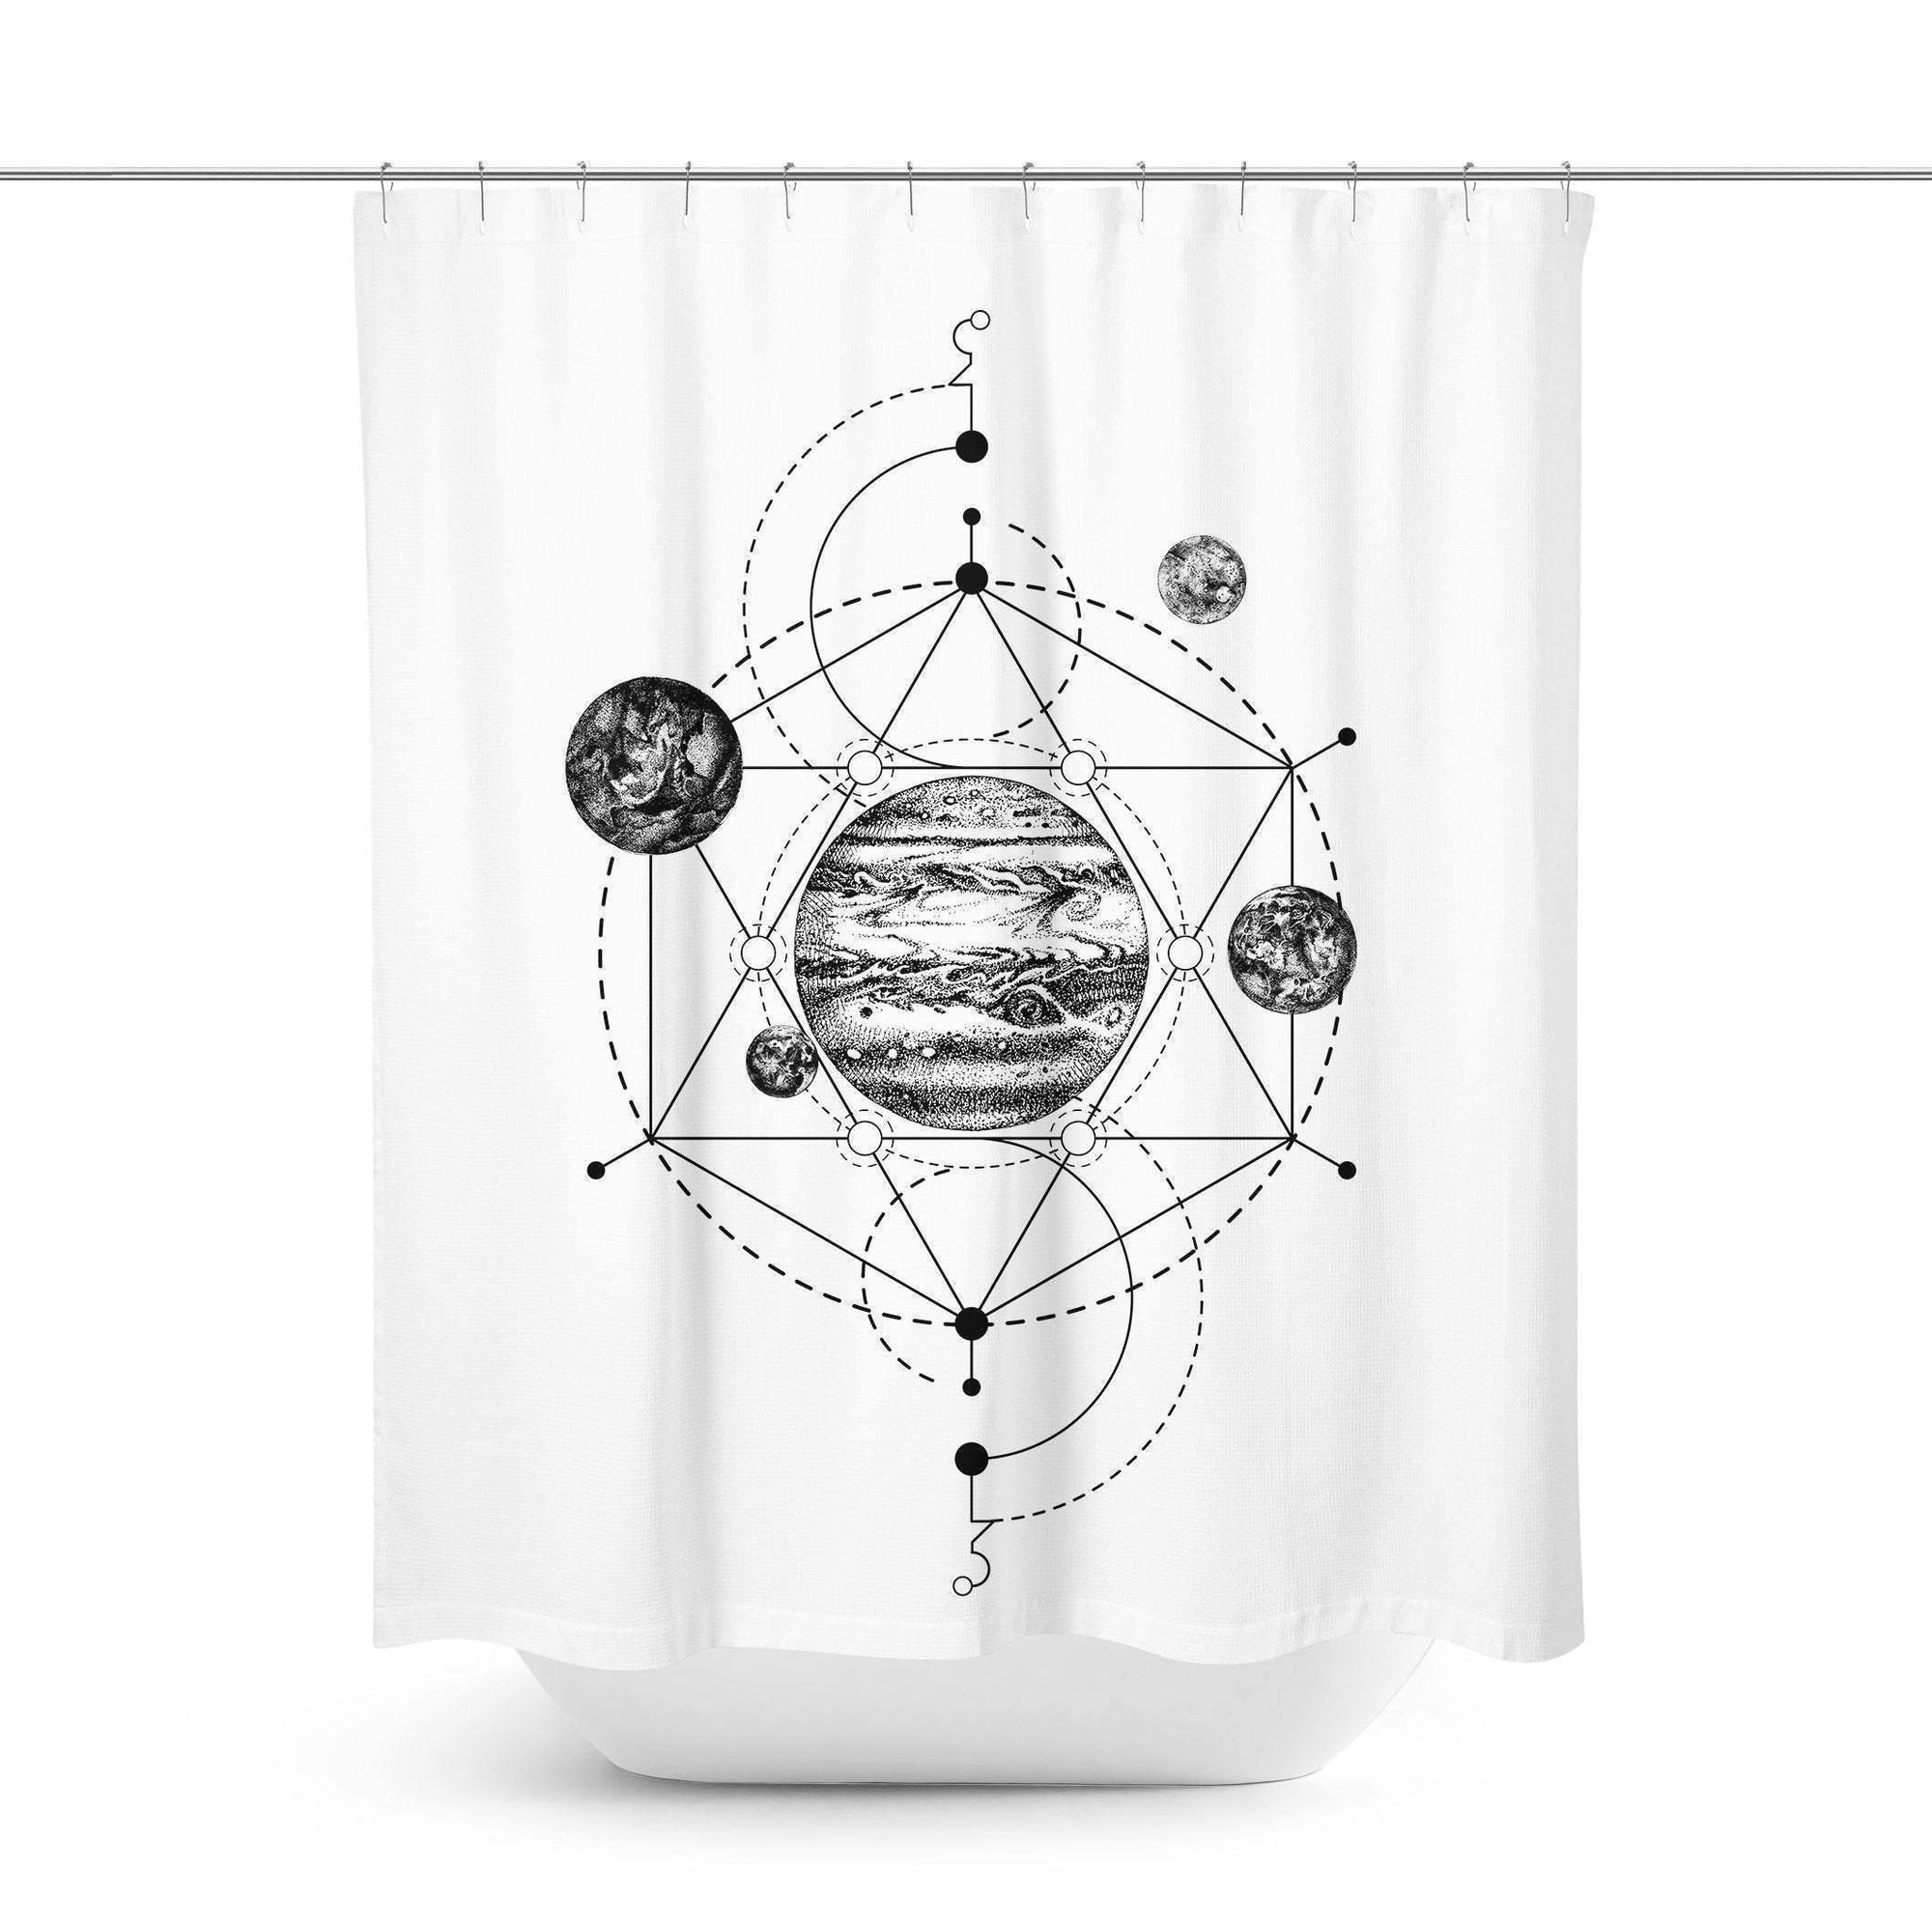 Celestial Planets Shower Curtain - Shower Curtains - W.FRANCIS